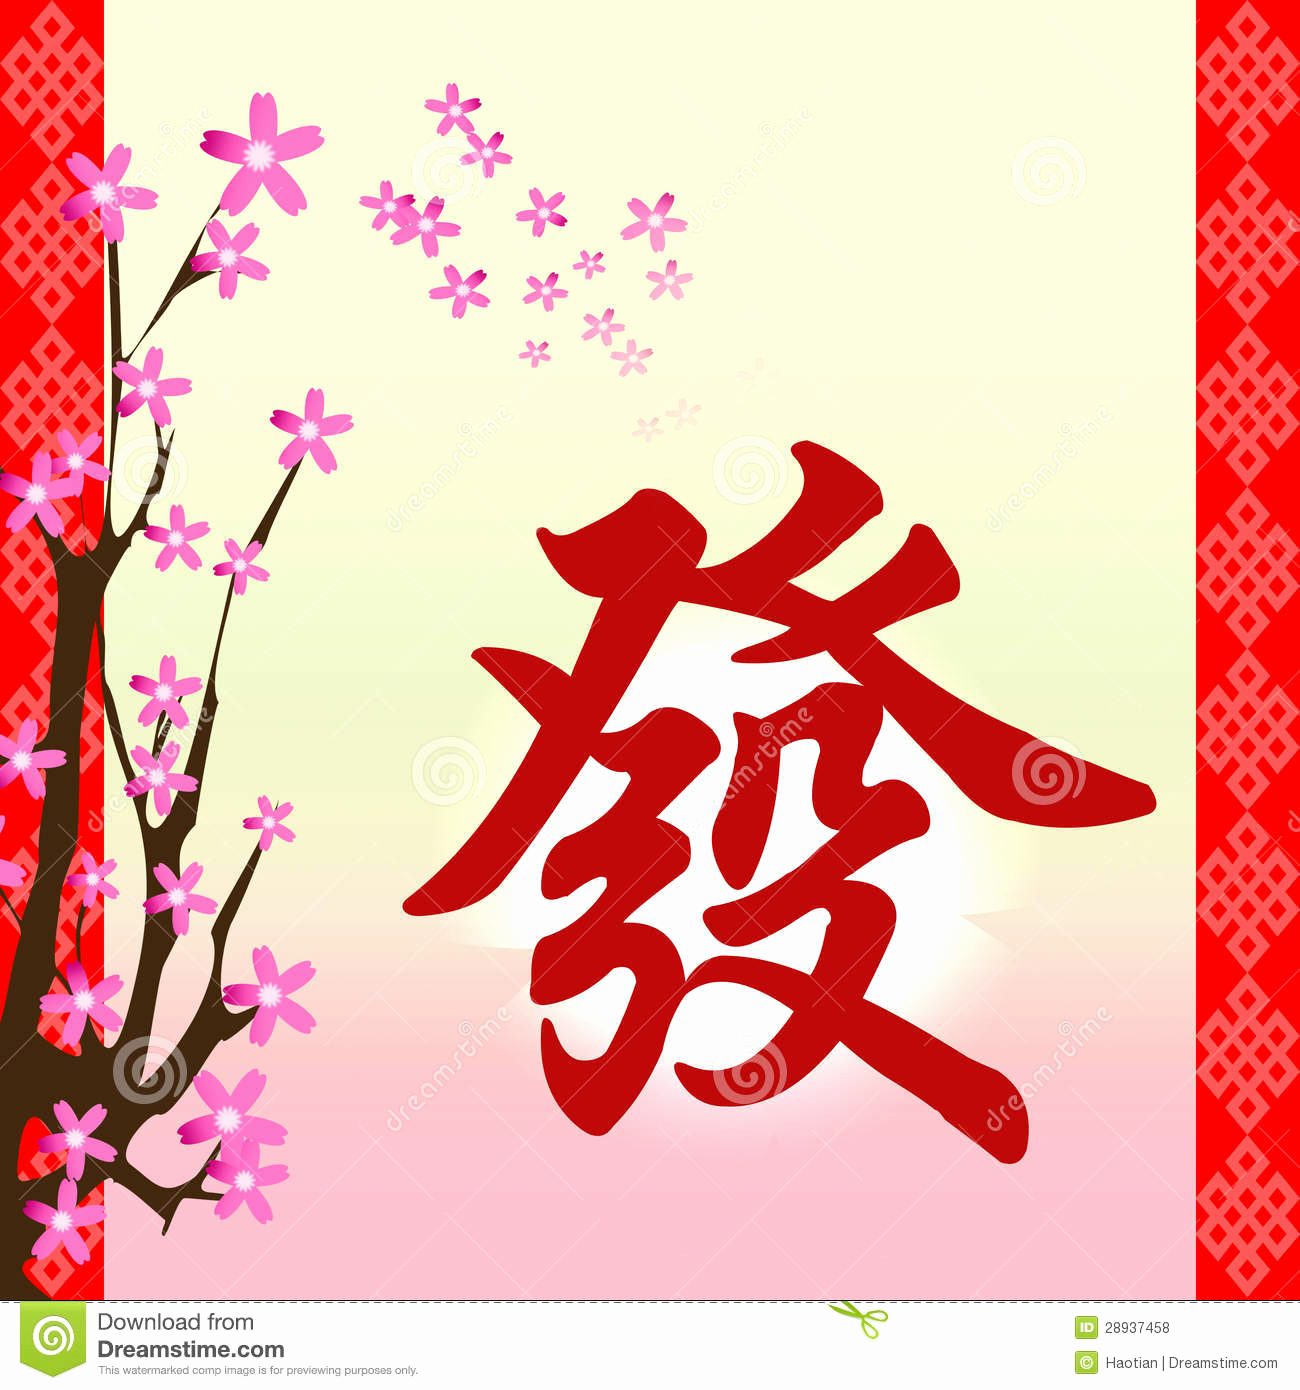 New Year Card Template Elegant Chinese New Year Card Template – Merry Christmas & Happy